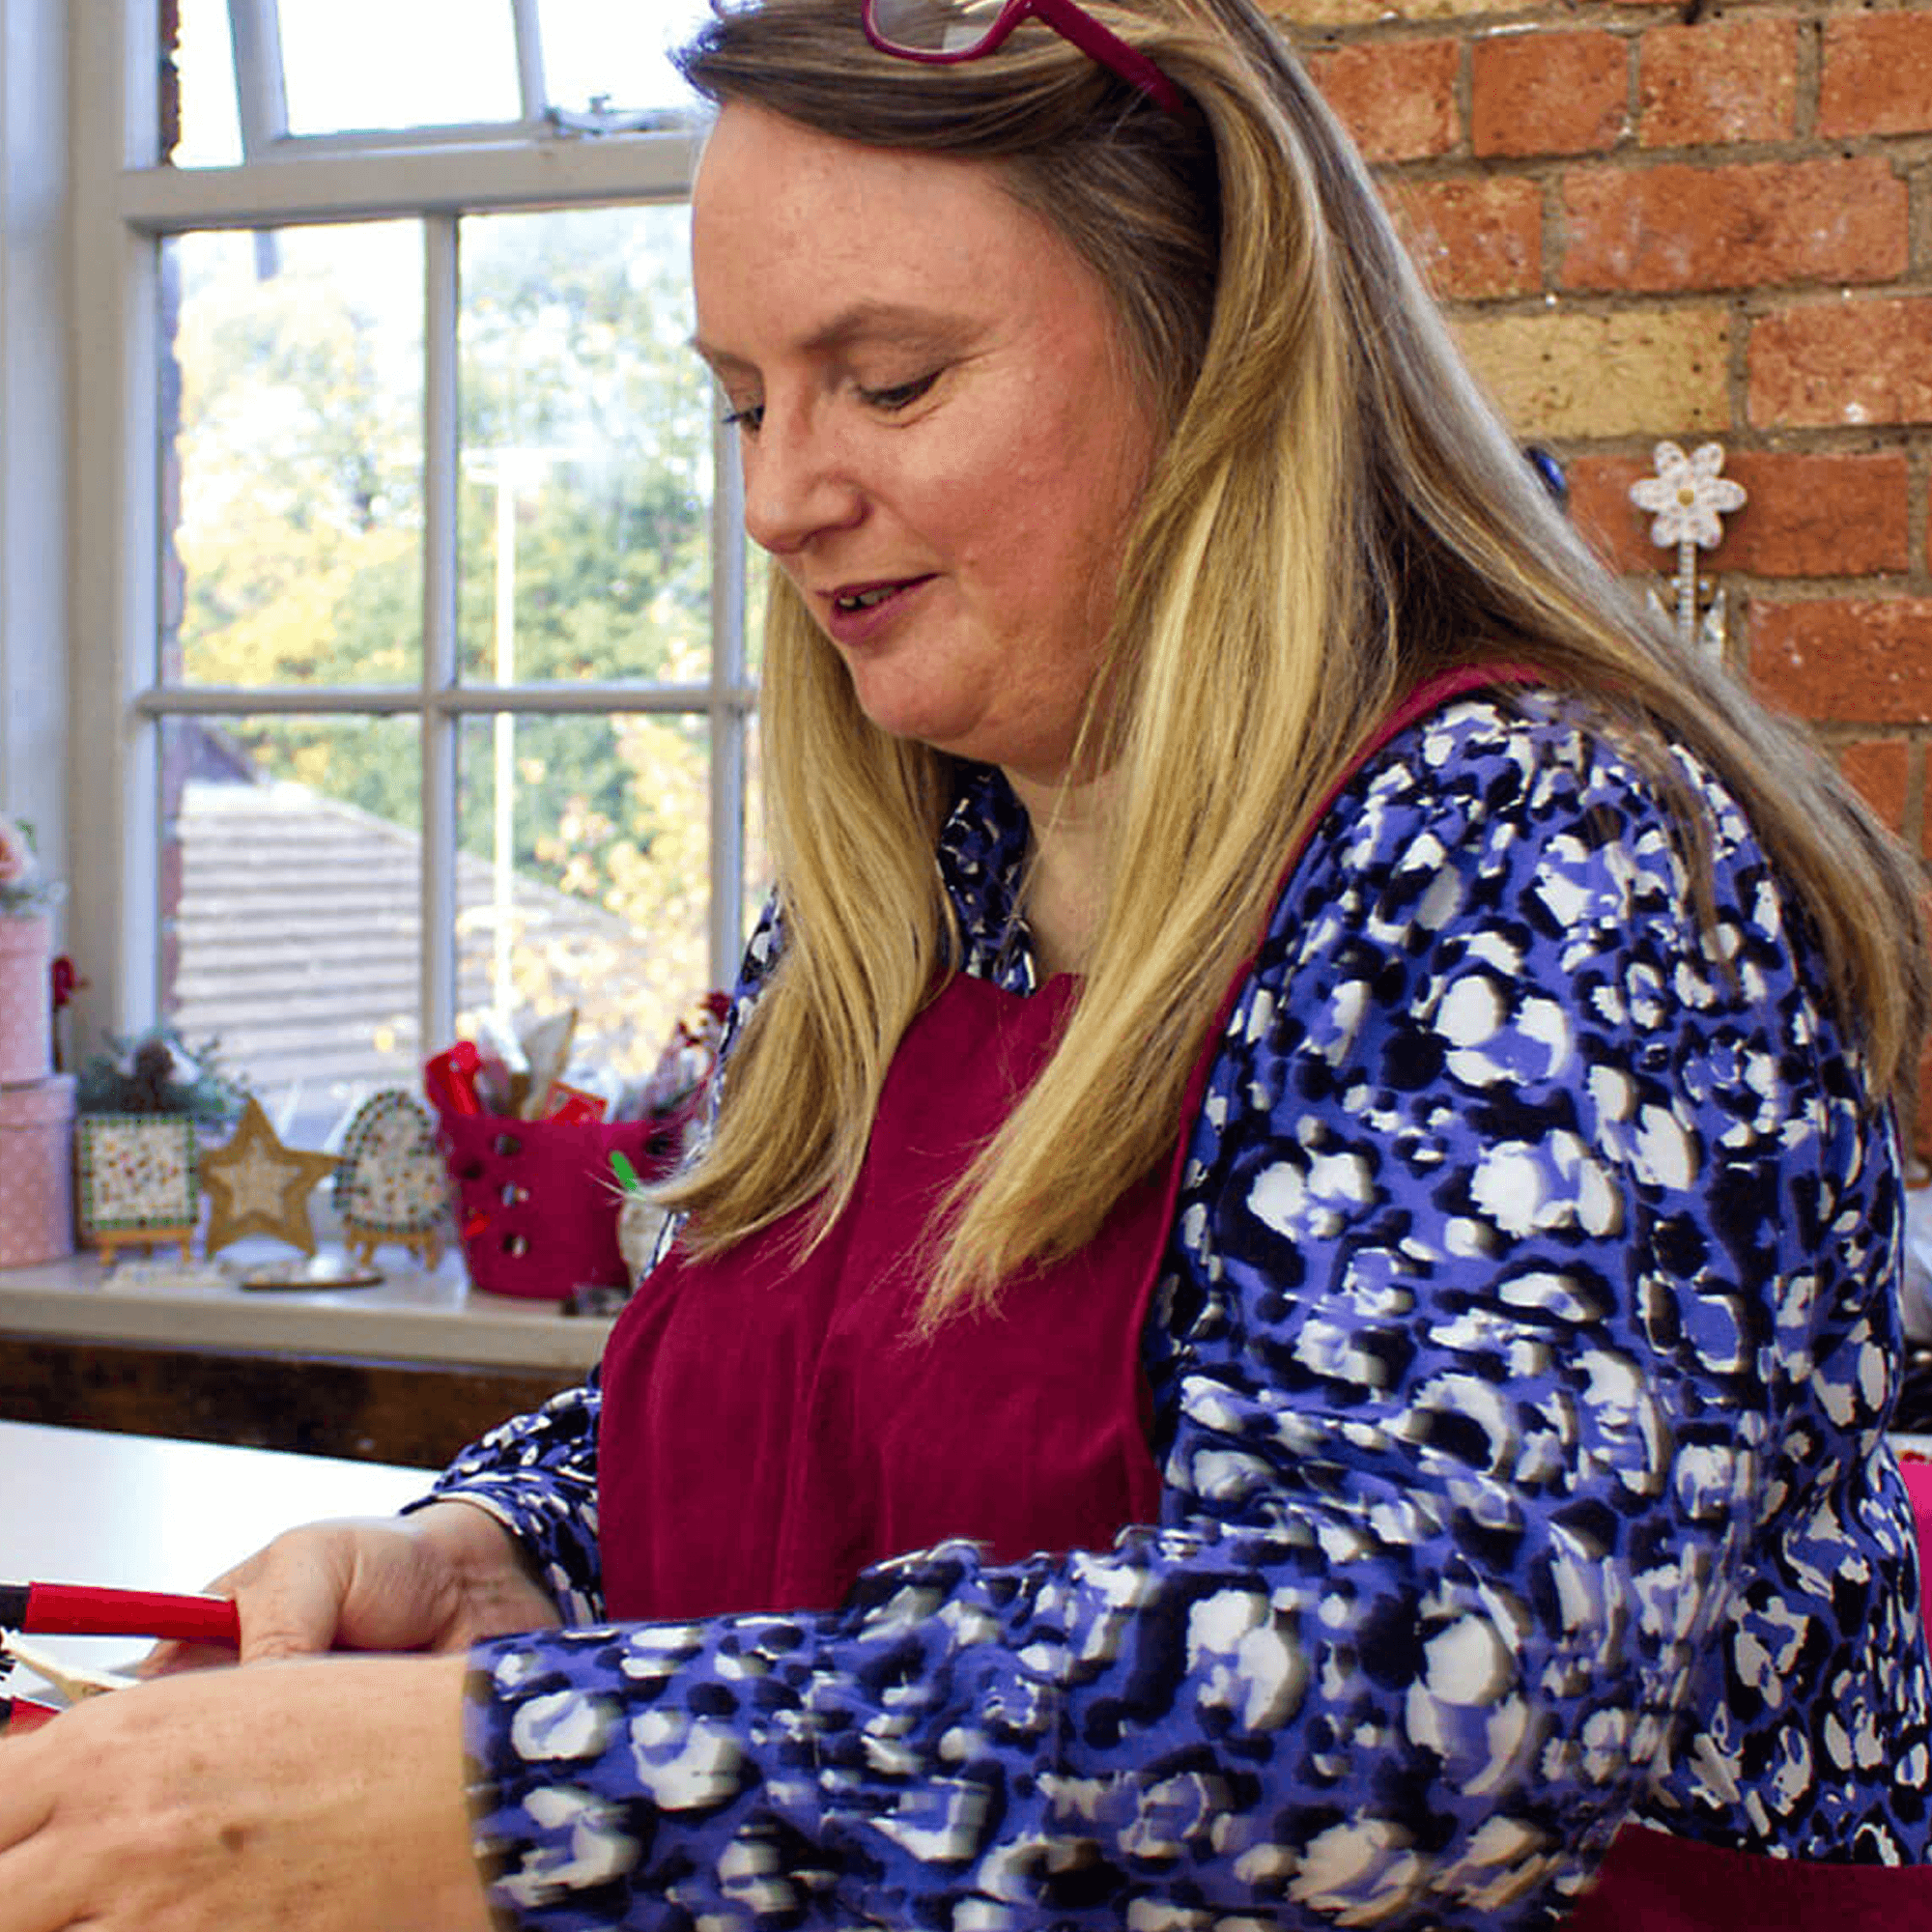 A blonde lady wearing a burgundy apron, over a blue floral shirt